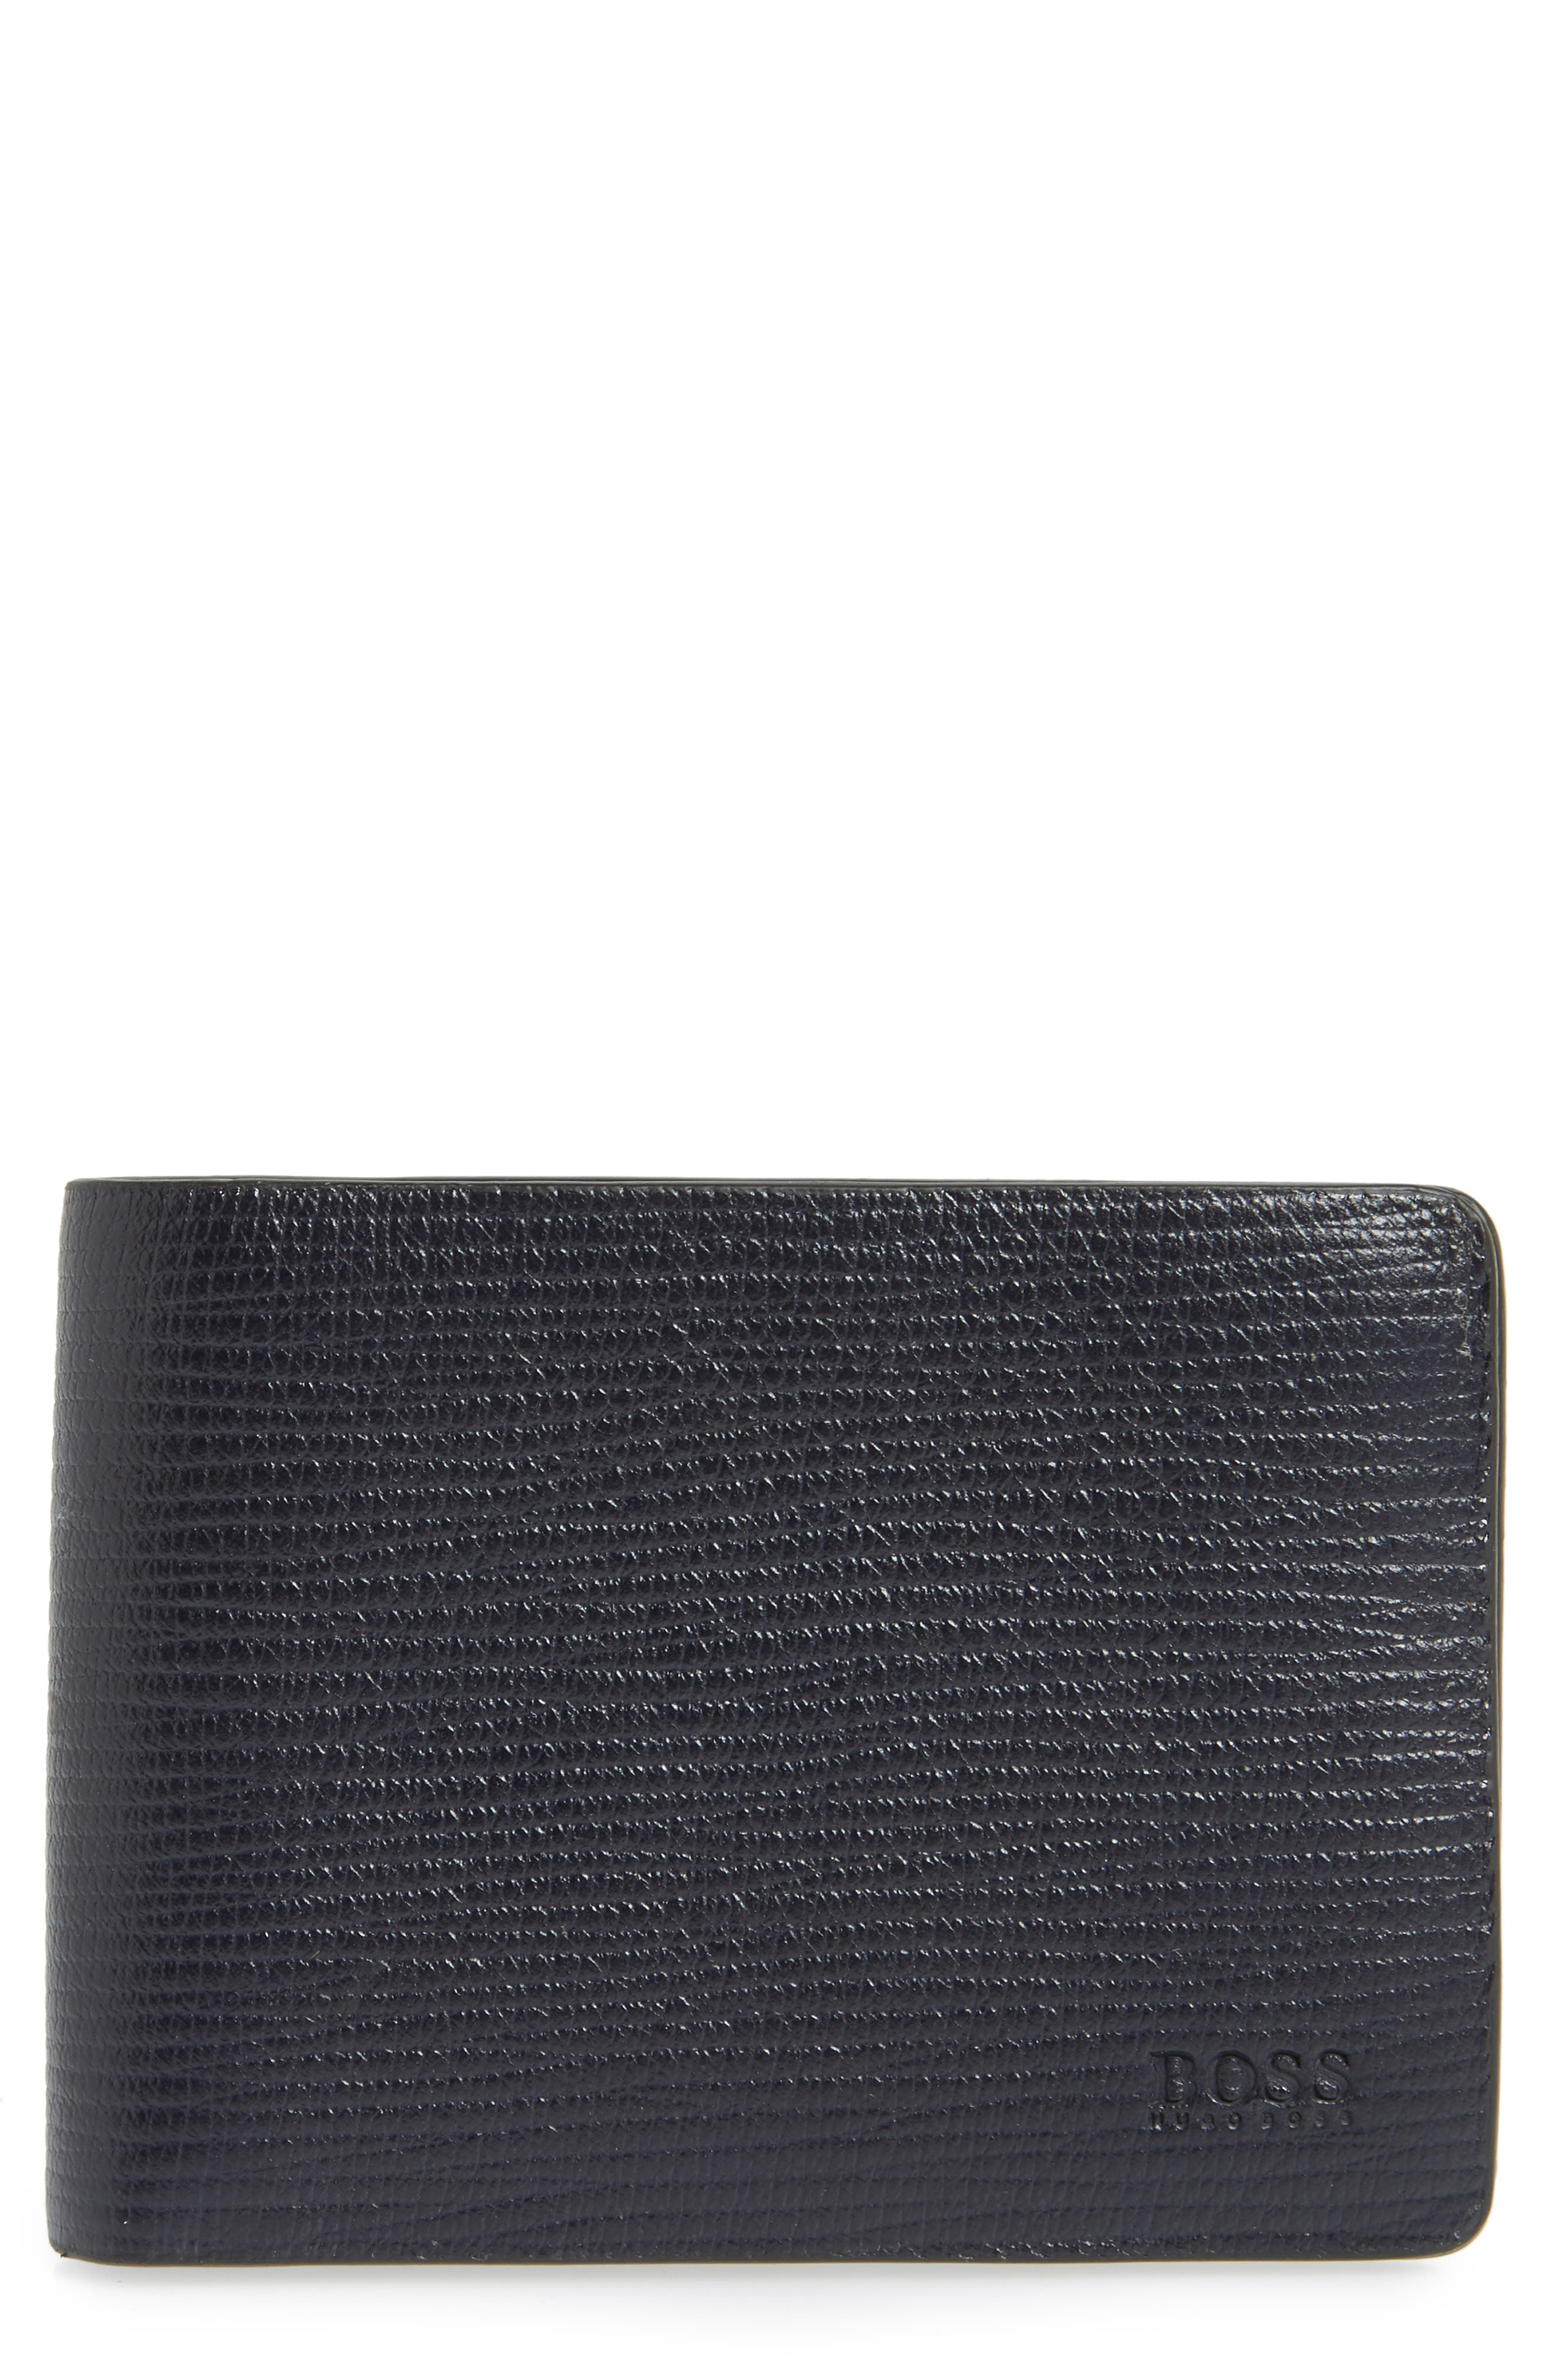 Main Image - BOSS Timeless Leather Wallet